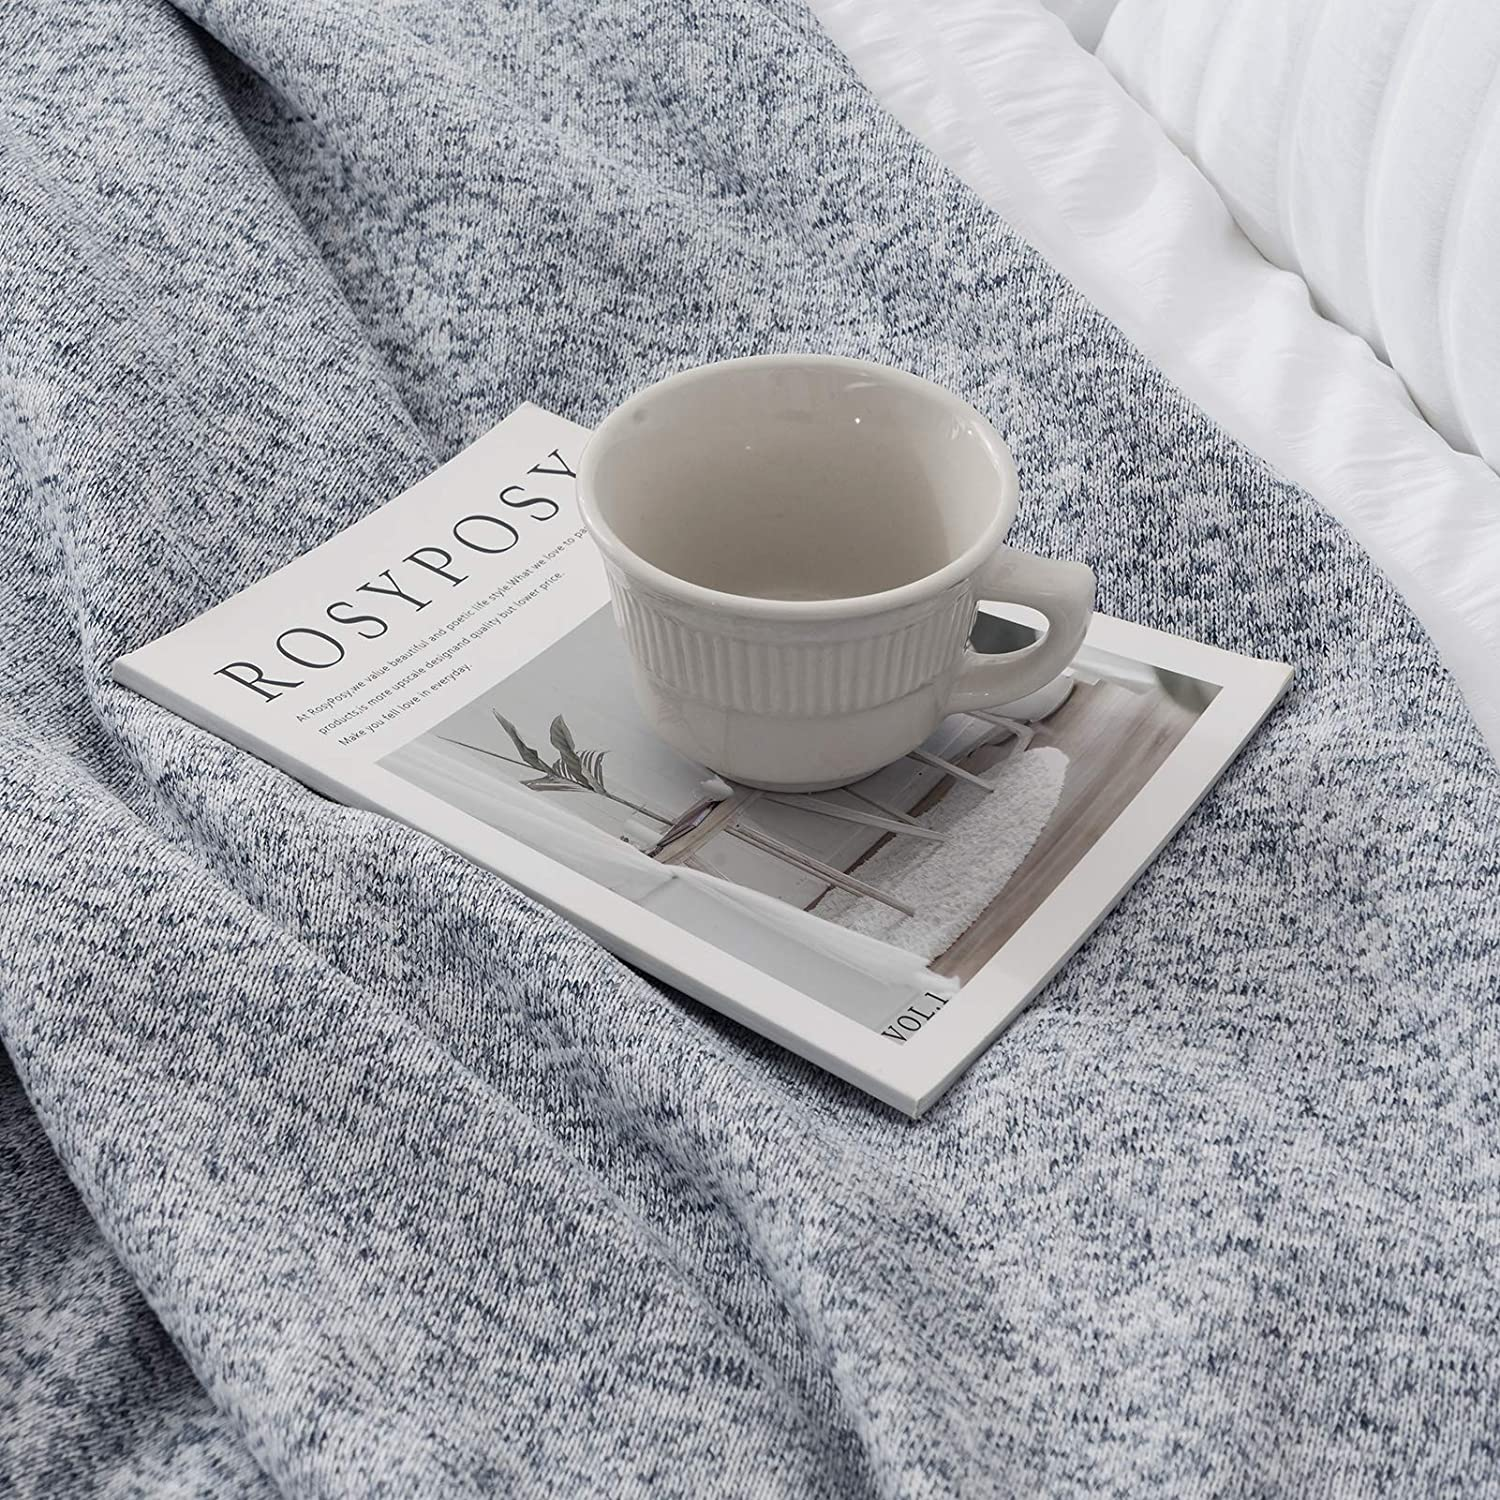 joybest Bed Throw Knit Blanket Lightweight Breathable Fuzzy Jersey Thin Throw Blanket for Couch Sofa Bed Office Picnic Queen Size 90x90